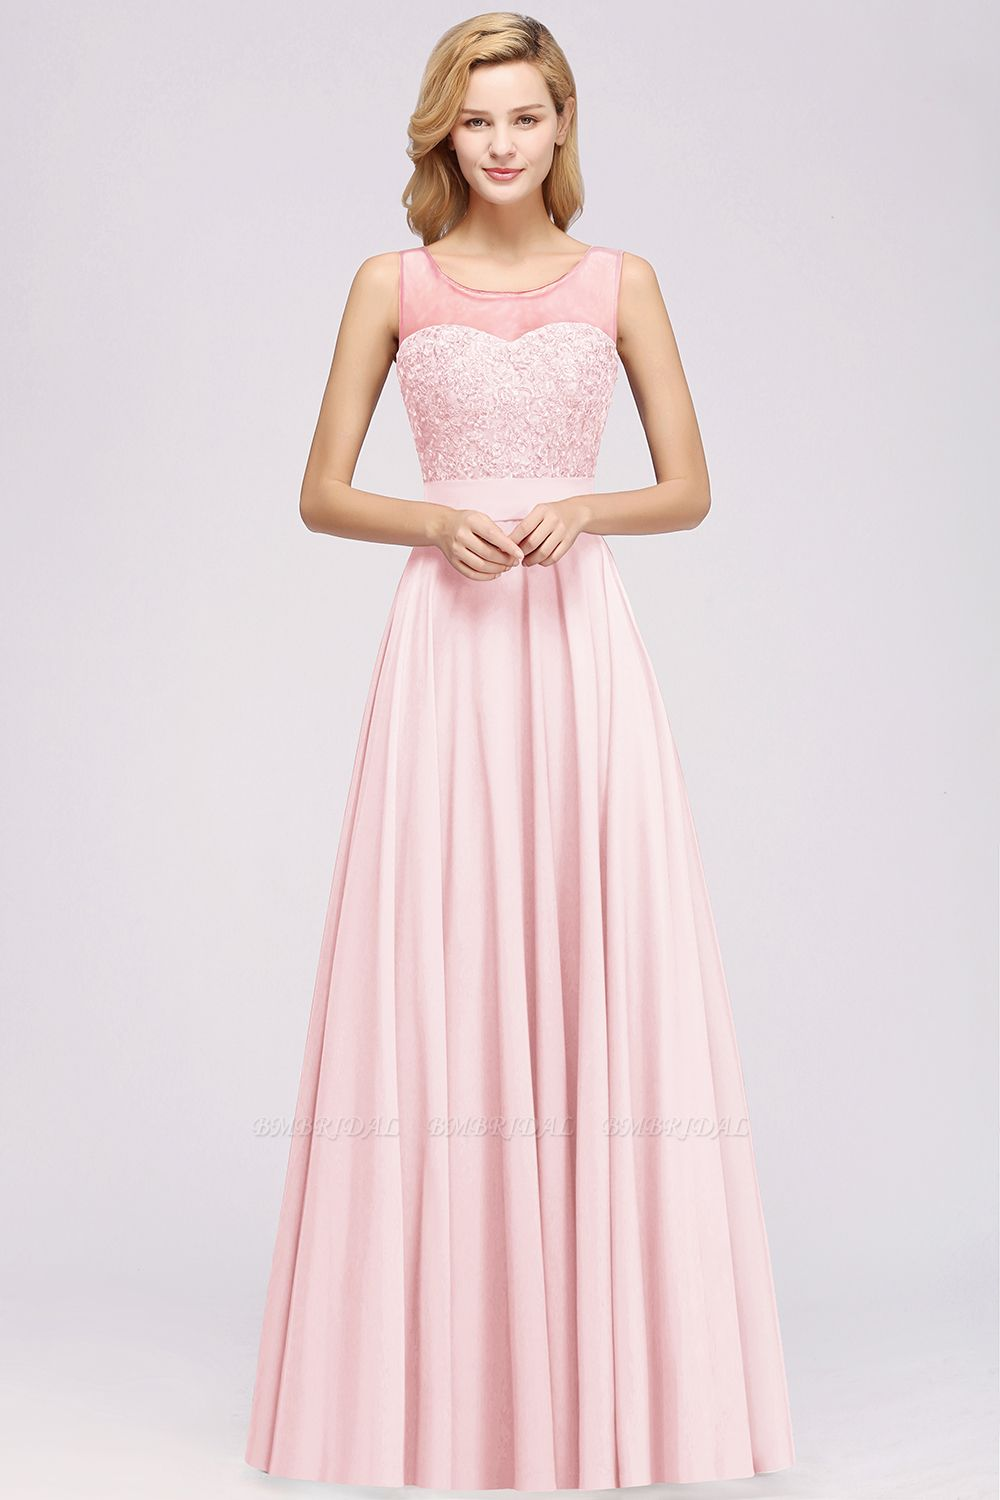 BMbridal Gorgeous Lace Jewel Affordable Pink Bridesmaid Dress with Beadings